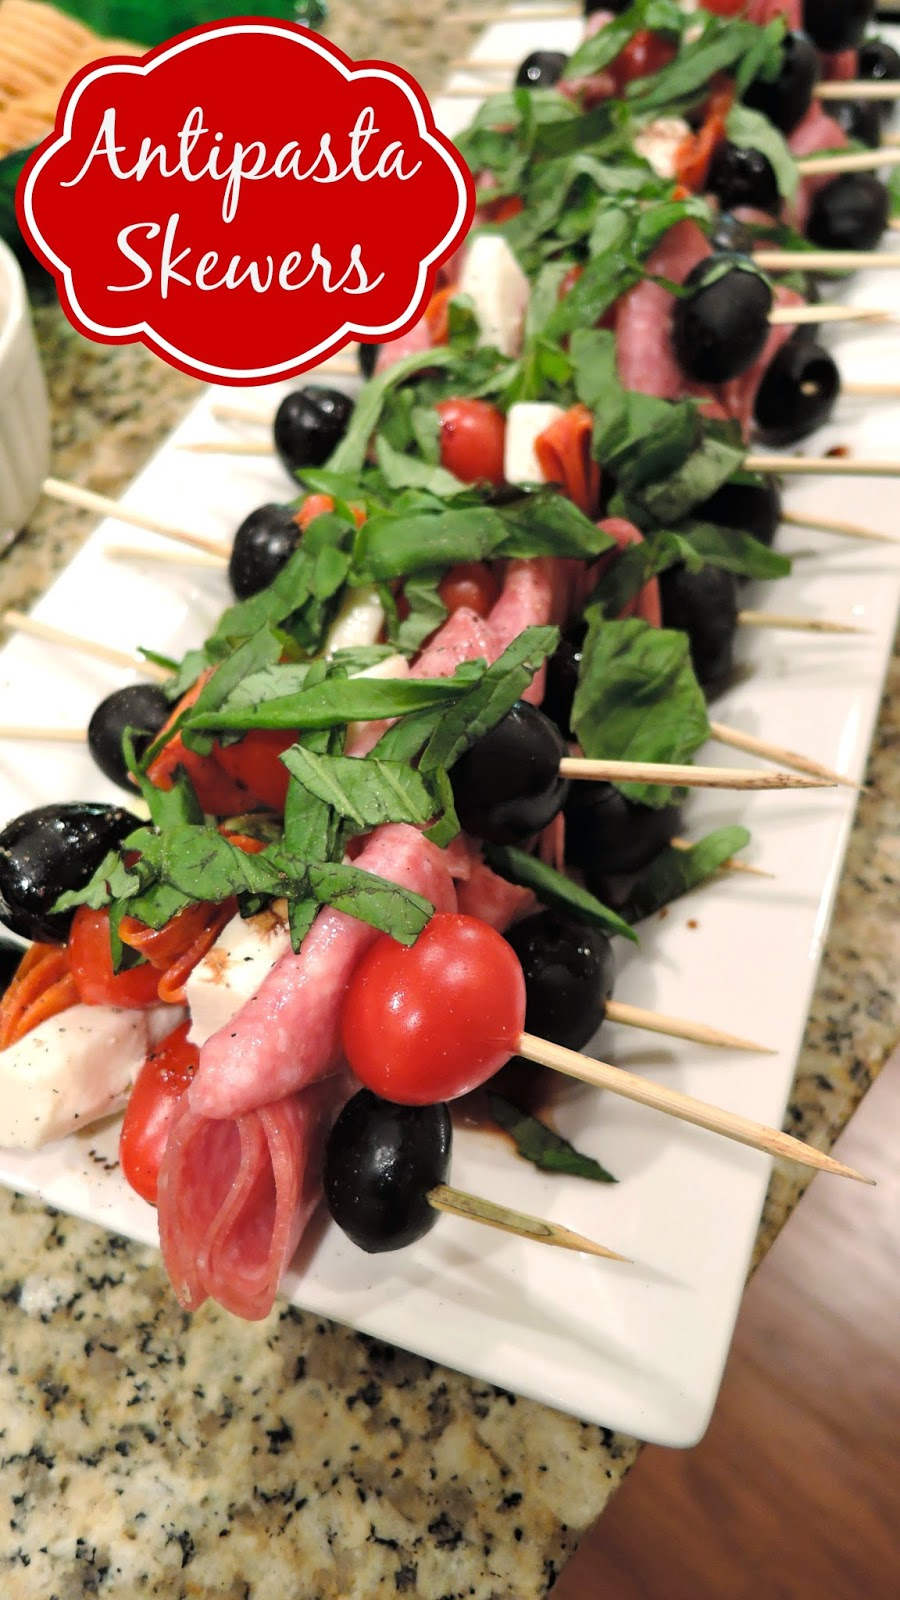 Antipasta Skewers